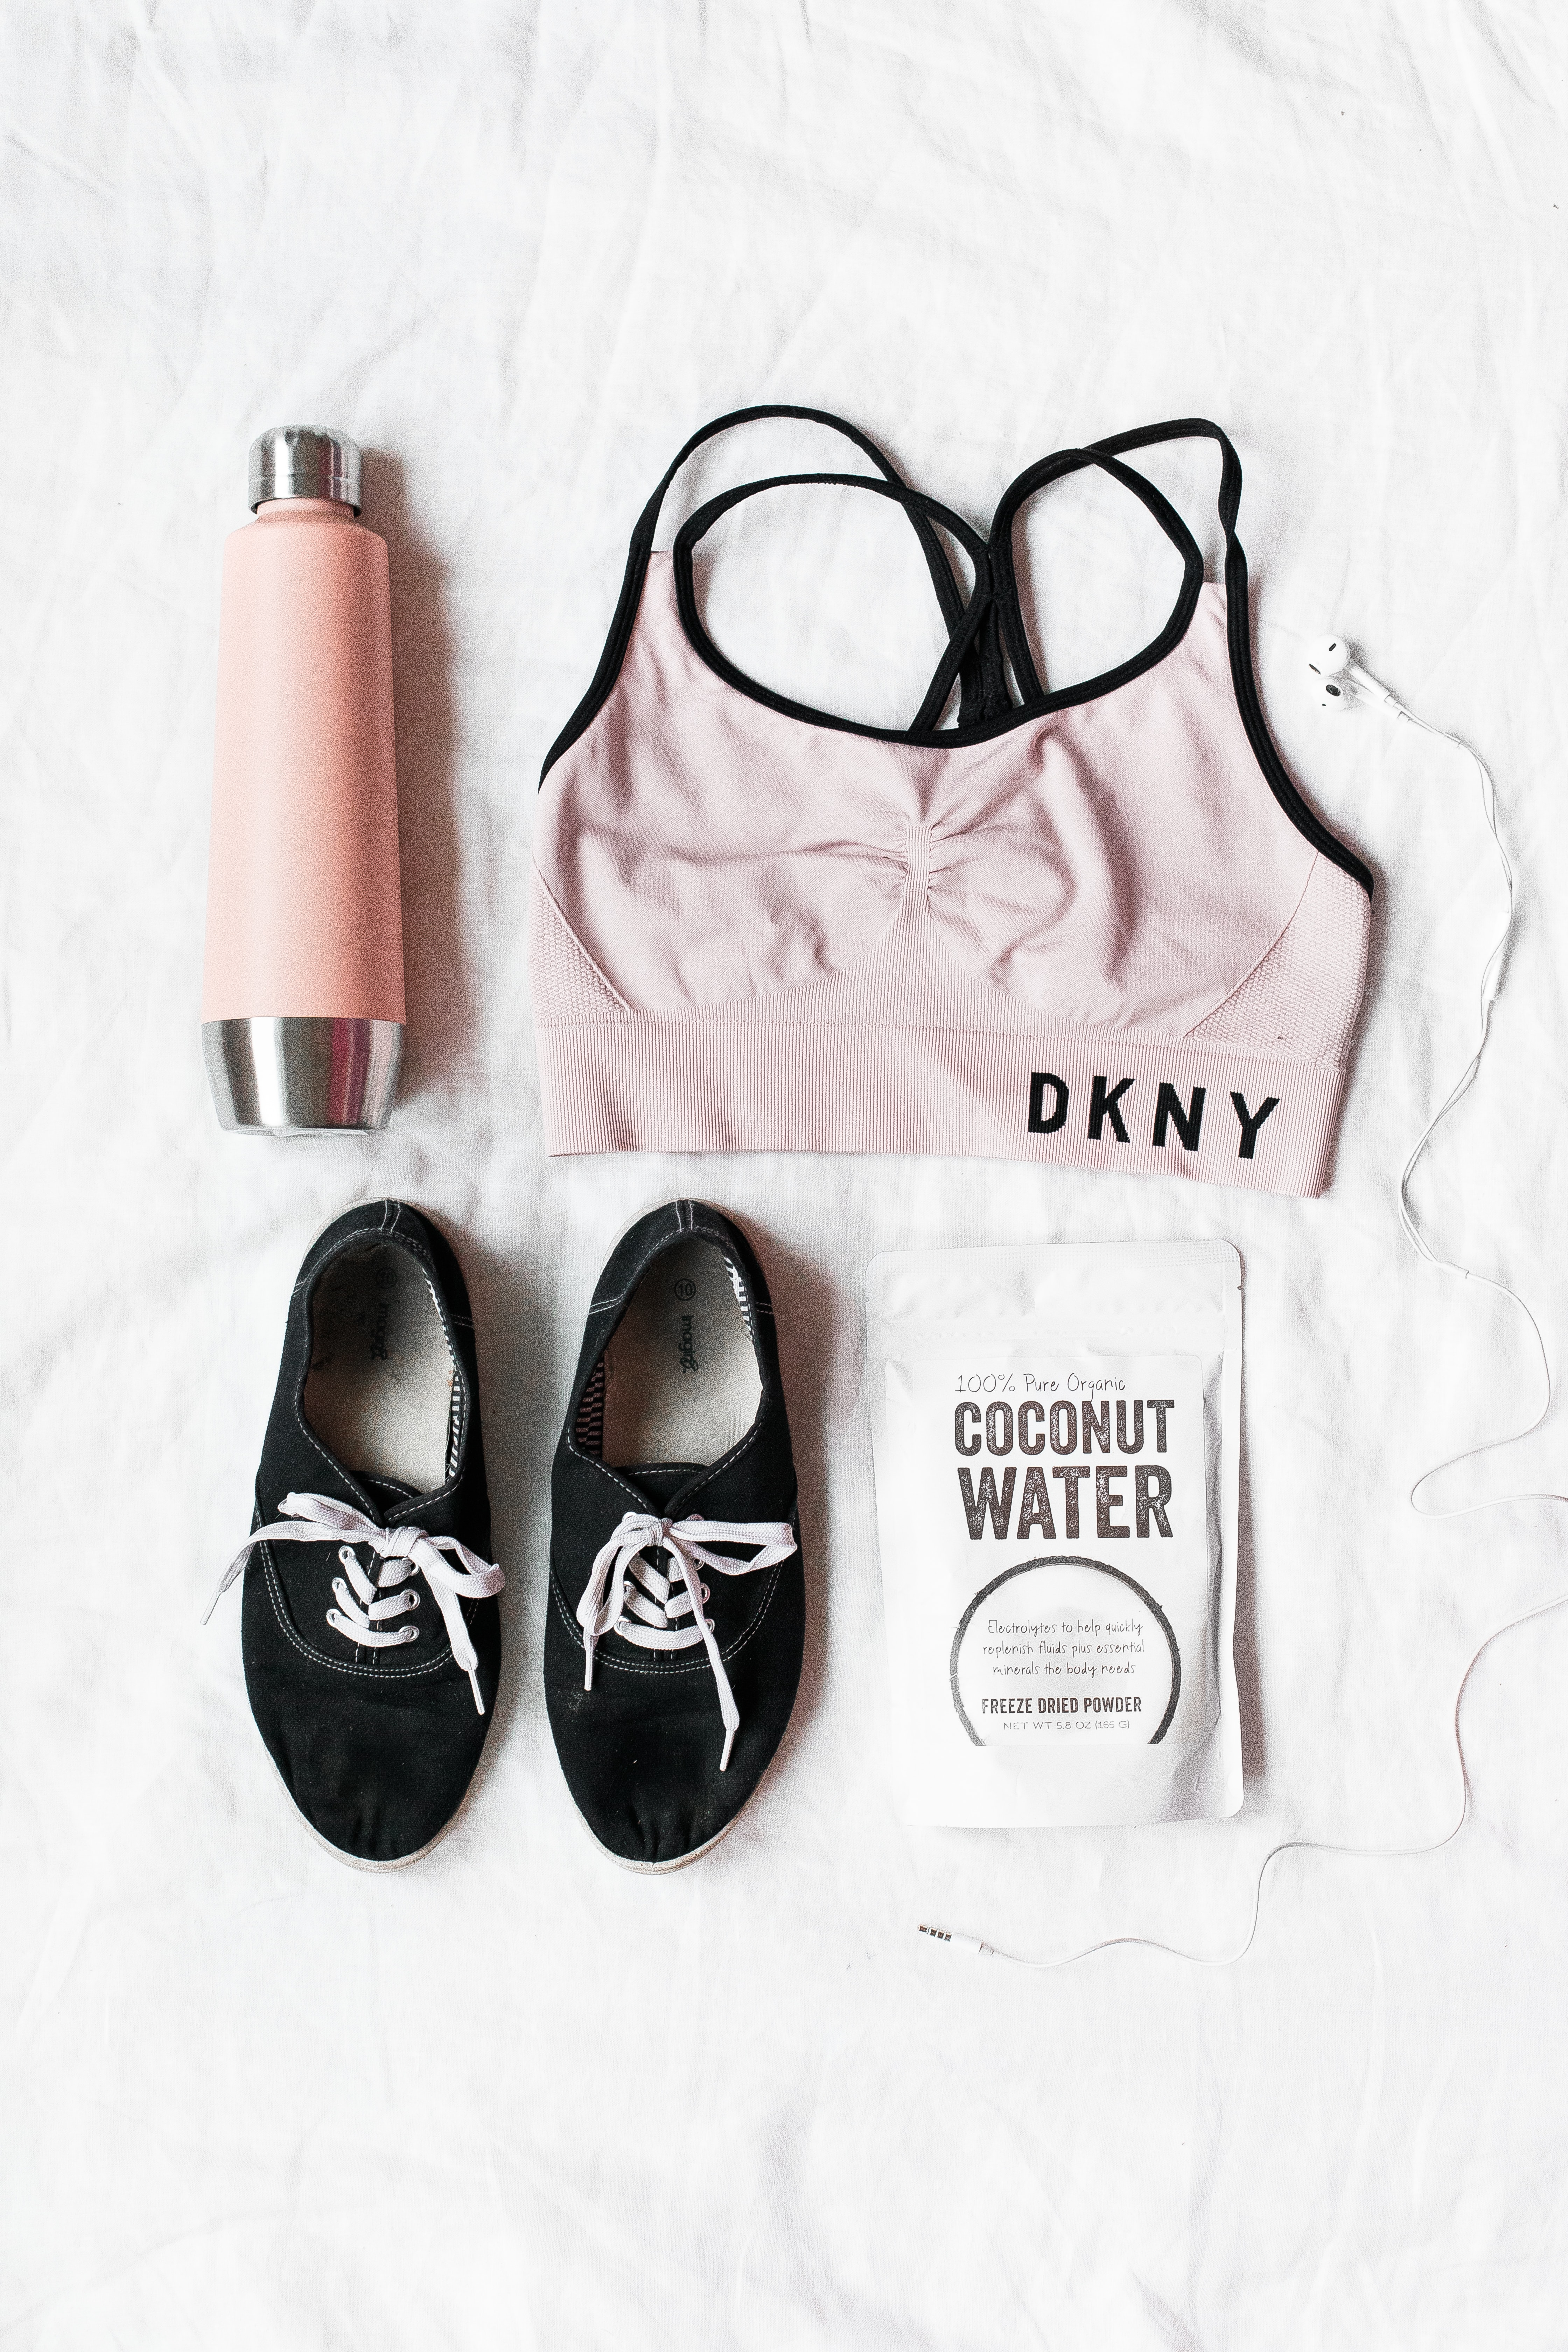 pair of black lace-up shoes near DKNY sport bra